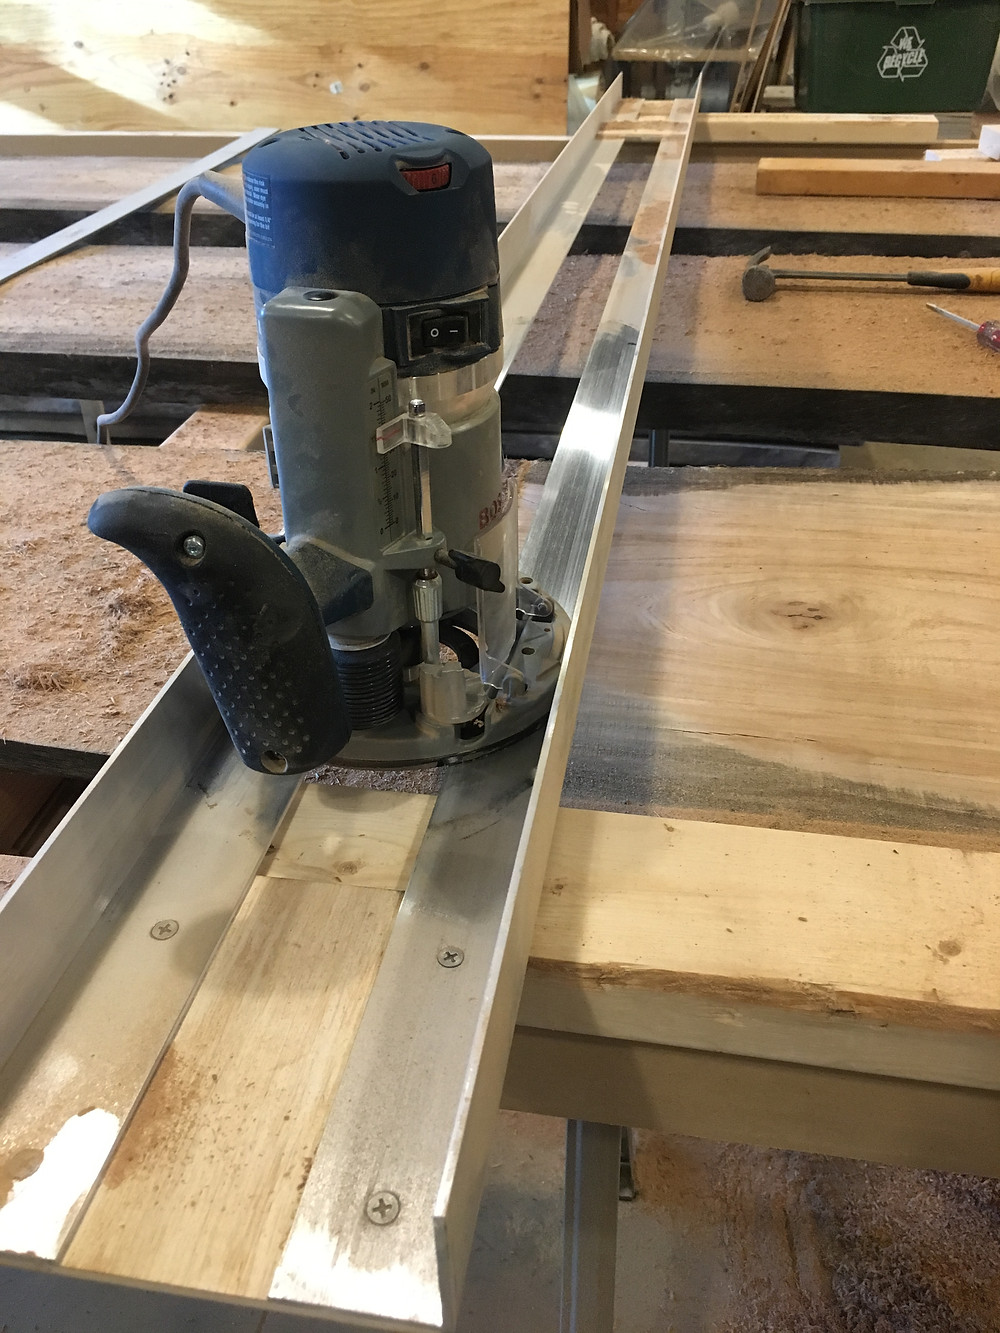 Router sled plunge router live edge slab Amana bit